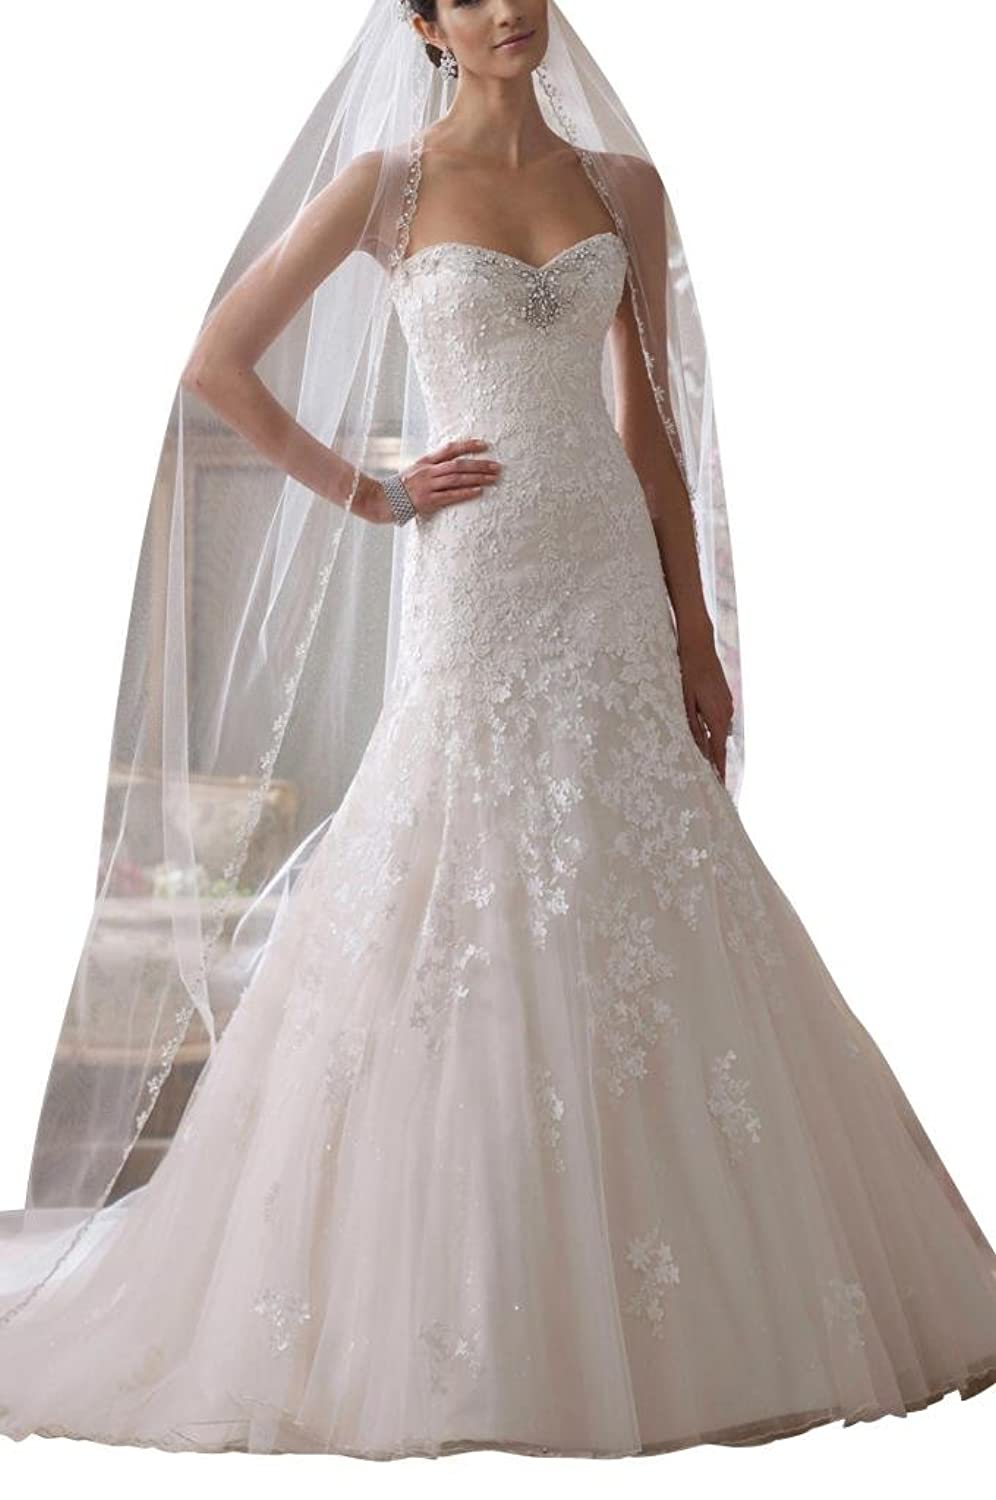 GEORGE BRIDE Beautiful Goddess exquisite lace wedding dress